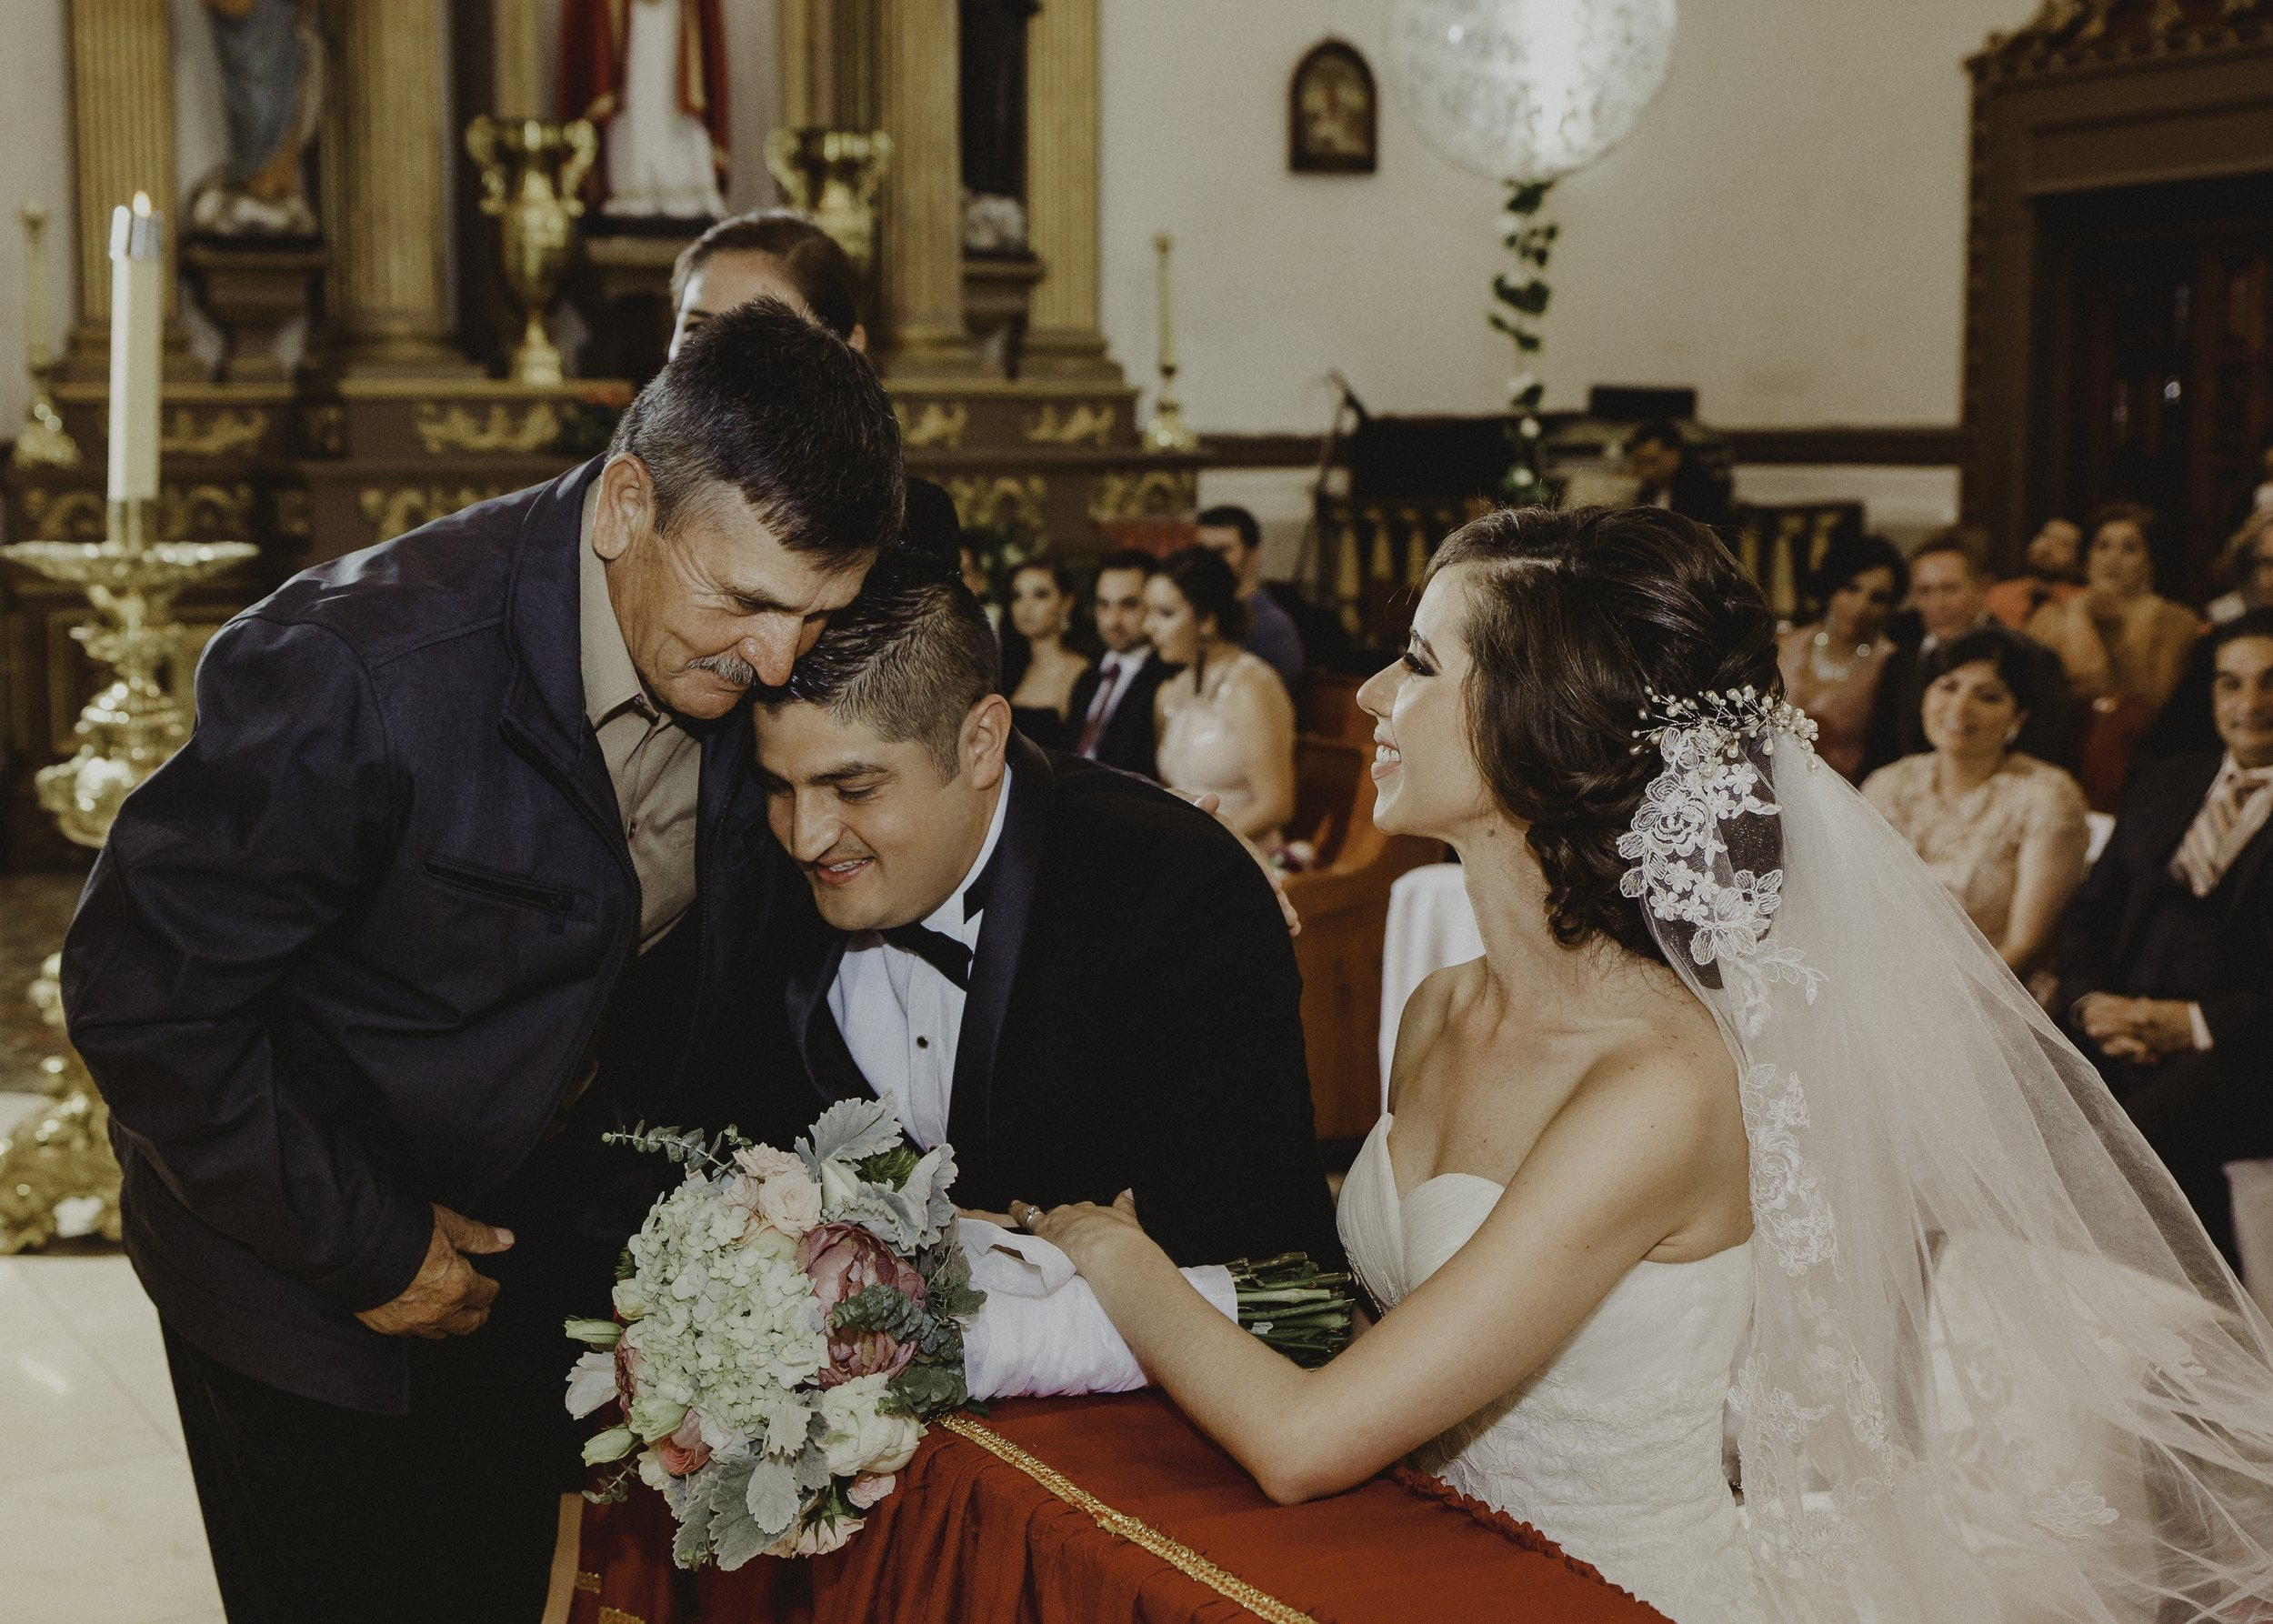 ODEMARIS_DANIEL-55carotida_photographer_boda_wedding.jpg